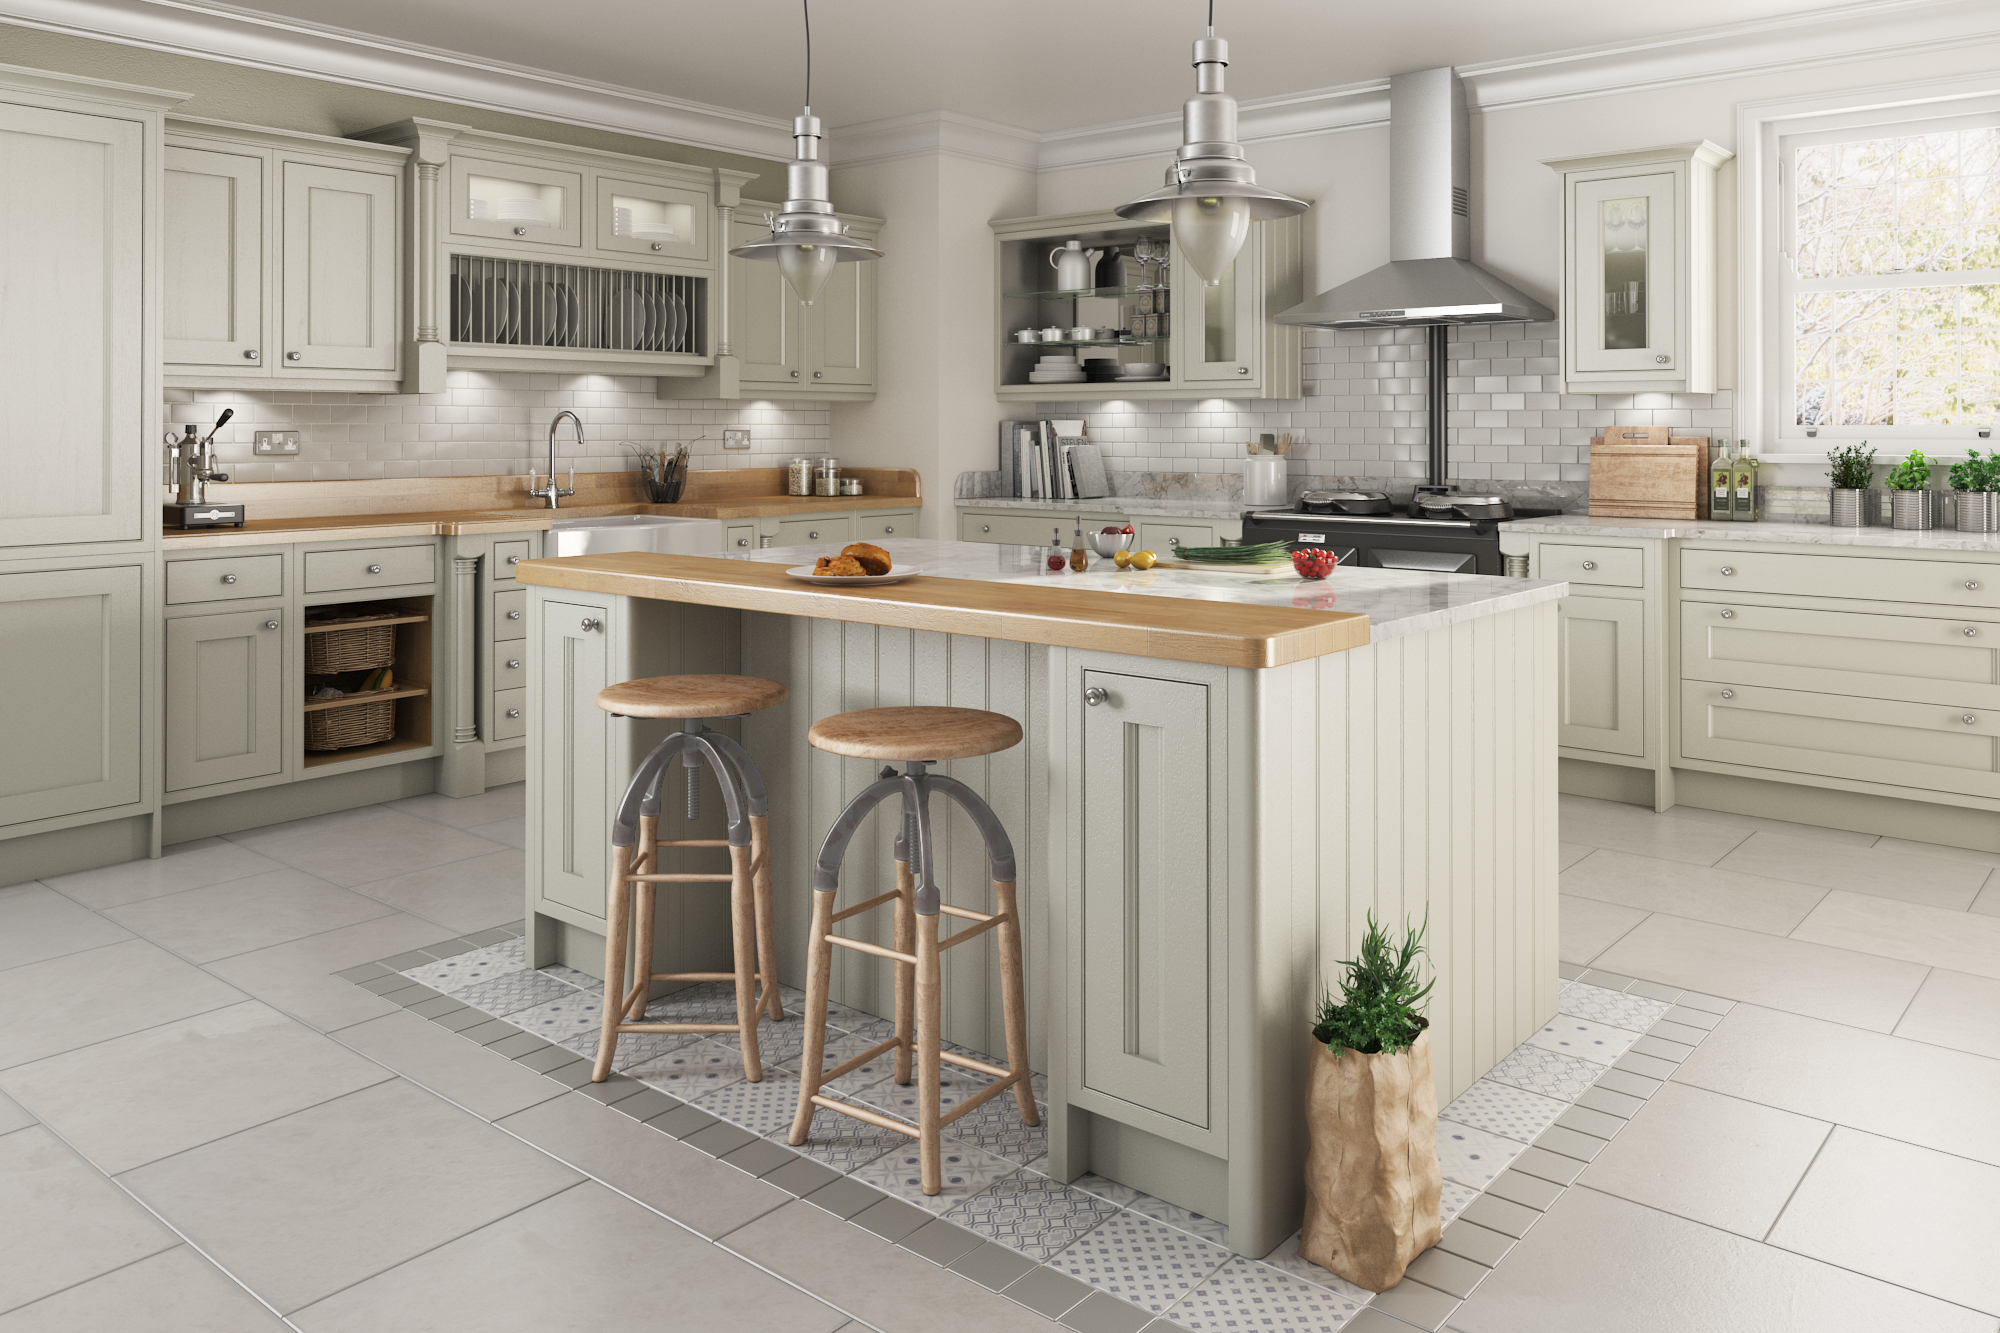 Painted Kitchens traditional in frame kitchen design - painted kitchens | think